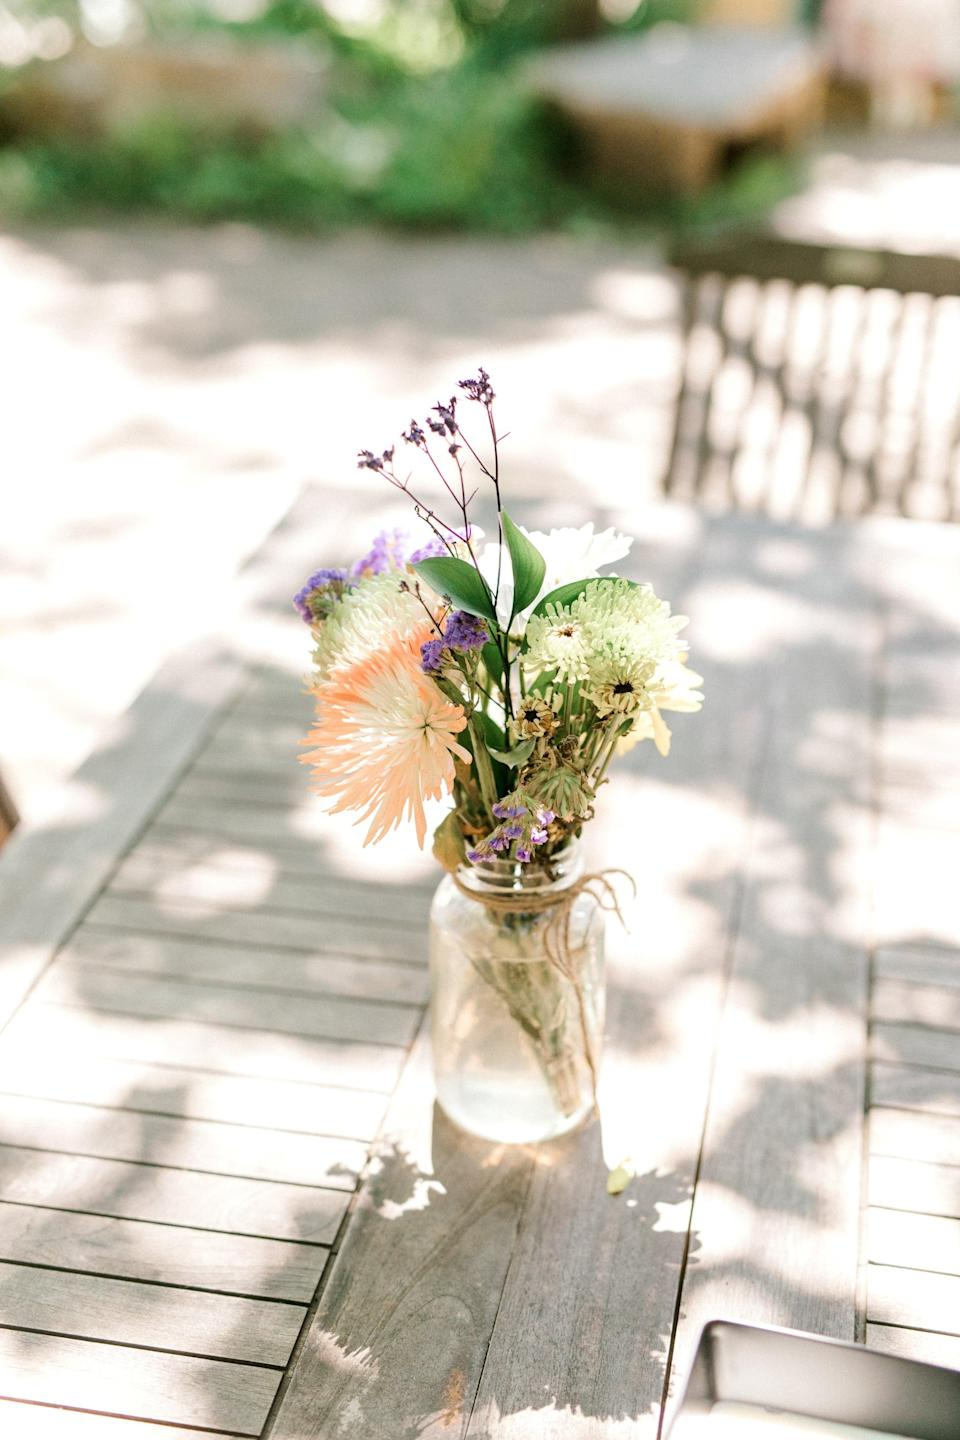 <p>Want to add a tasteful touch to your special day? Decorate your venue with cute, flower-filled mason jars. Just add a little wire or ribbon around the top of each jar, fill them with flowers and water, and you just made the prettiest arrangements of all.</p>